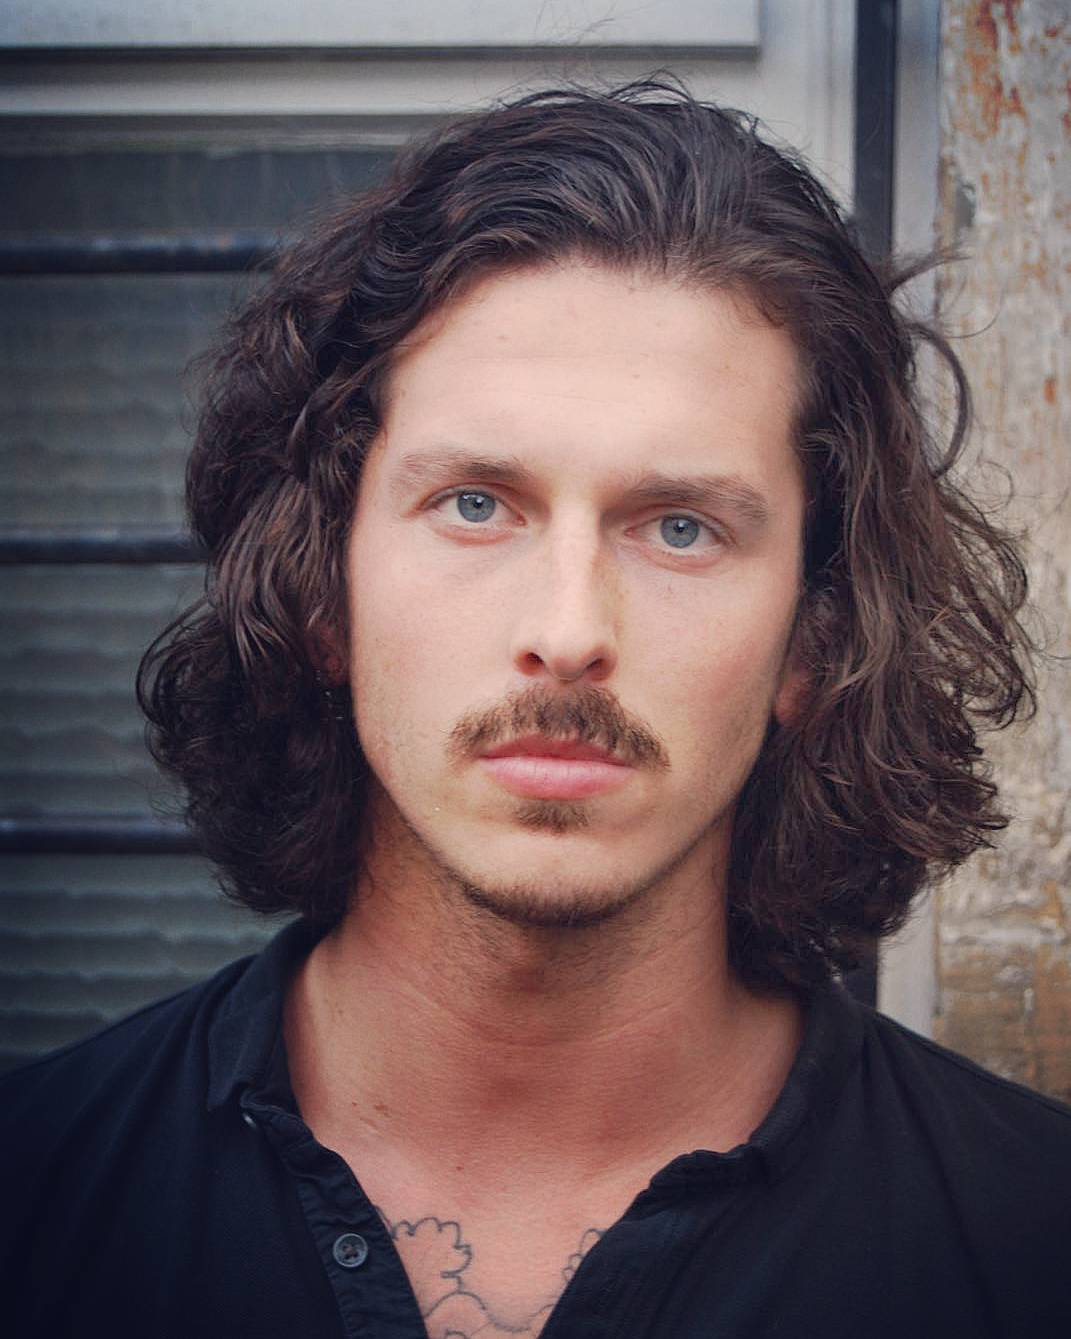 kilianmaddison lon wavy with mustache long hairstyles for men 2018